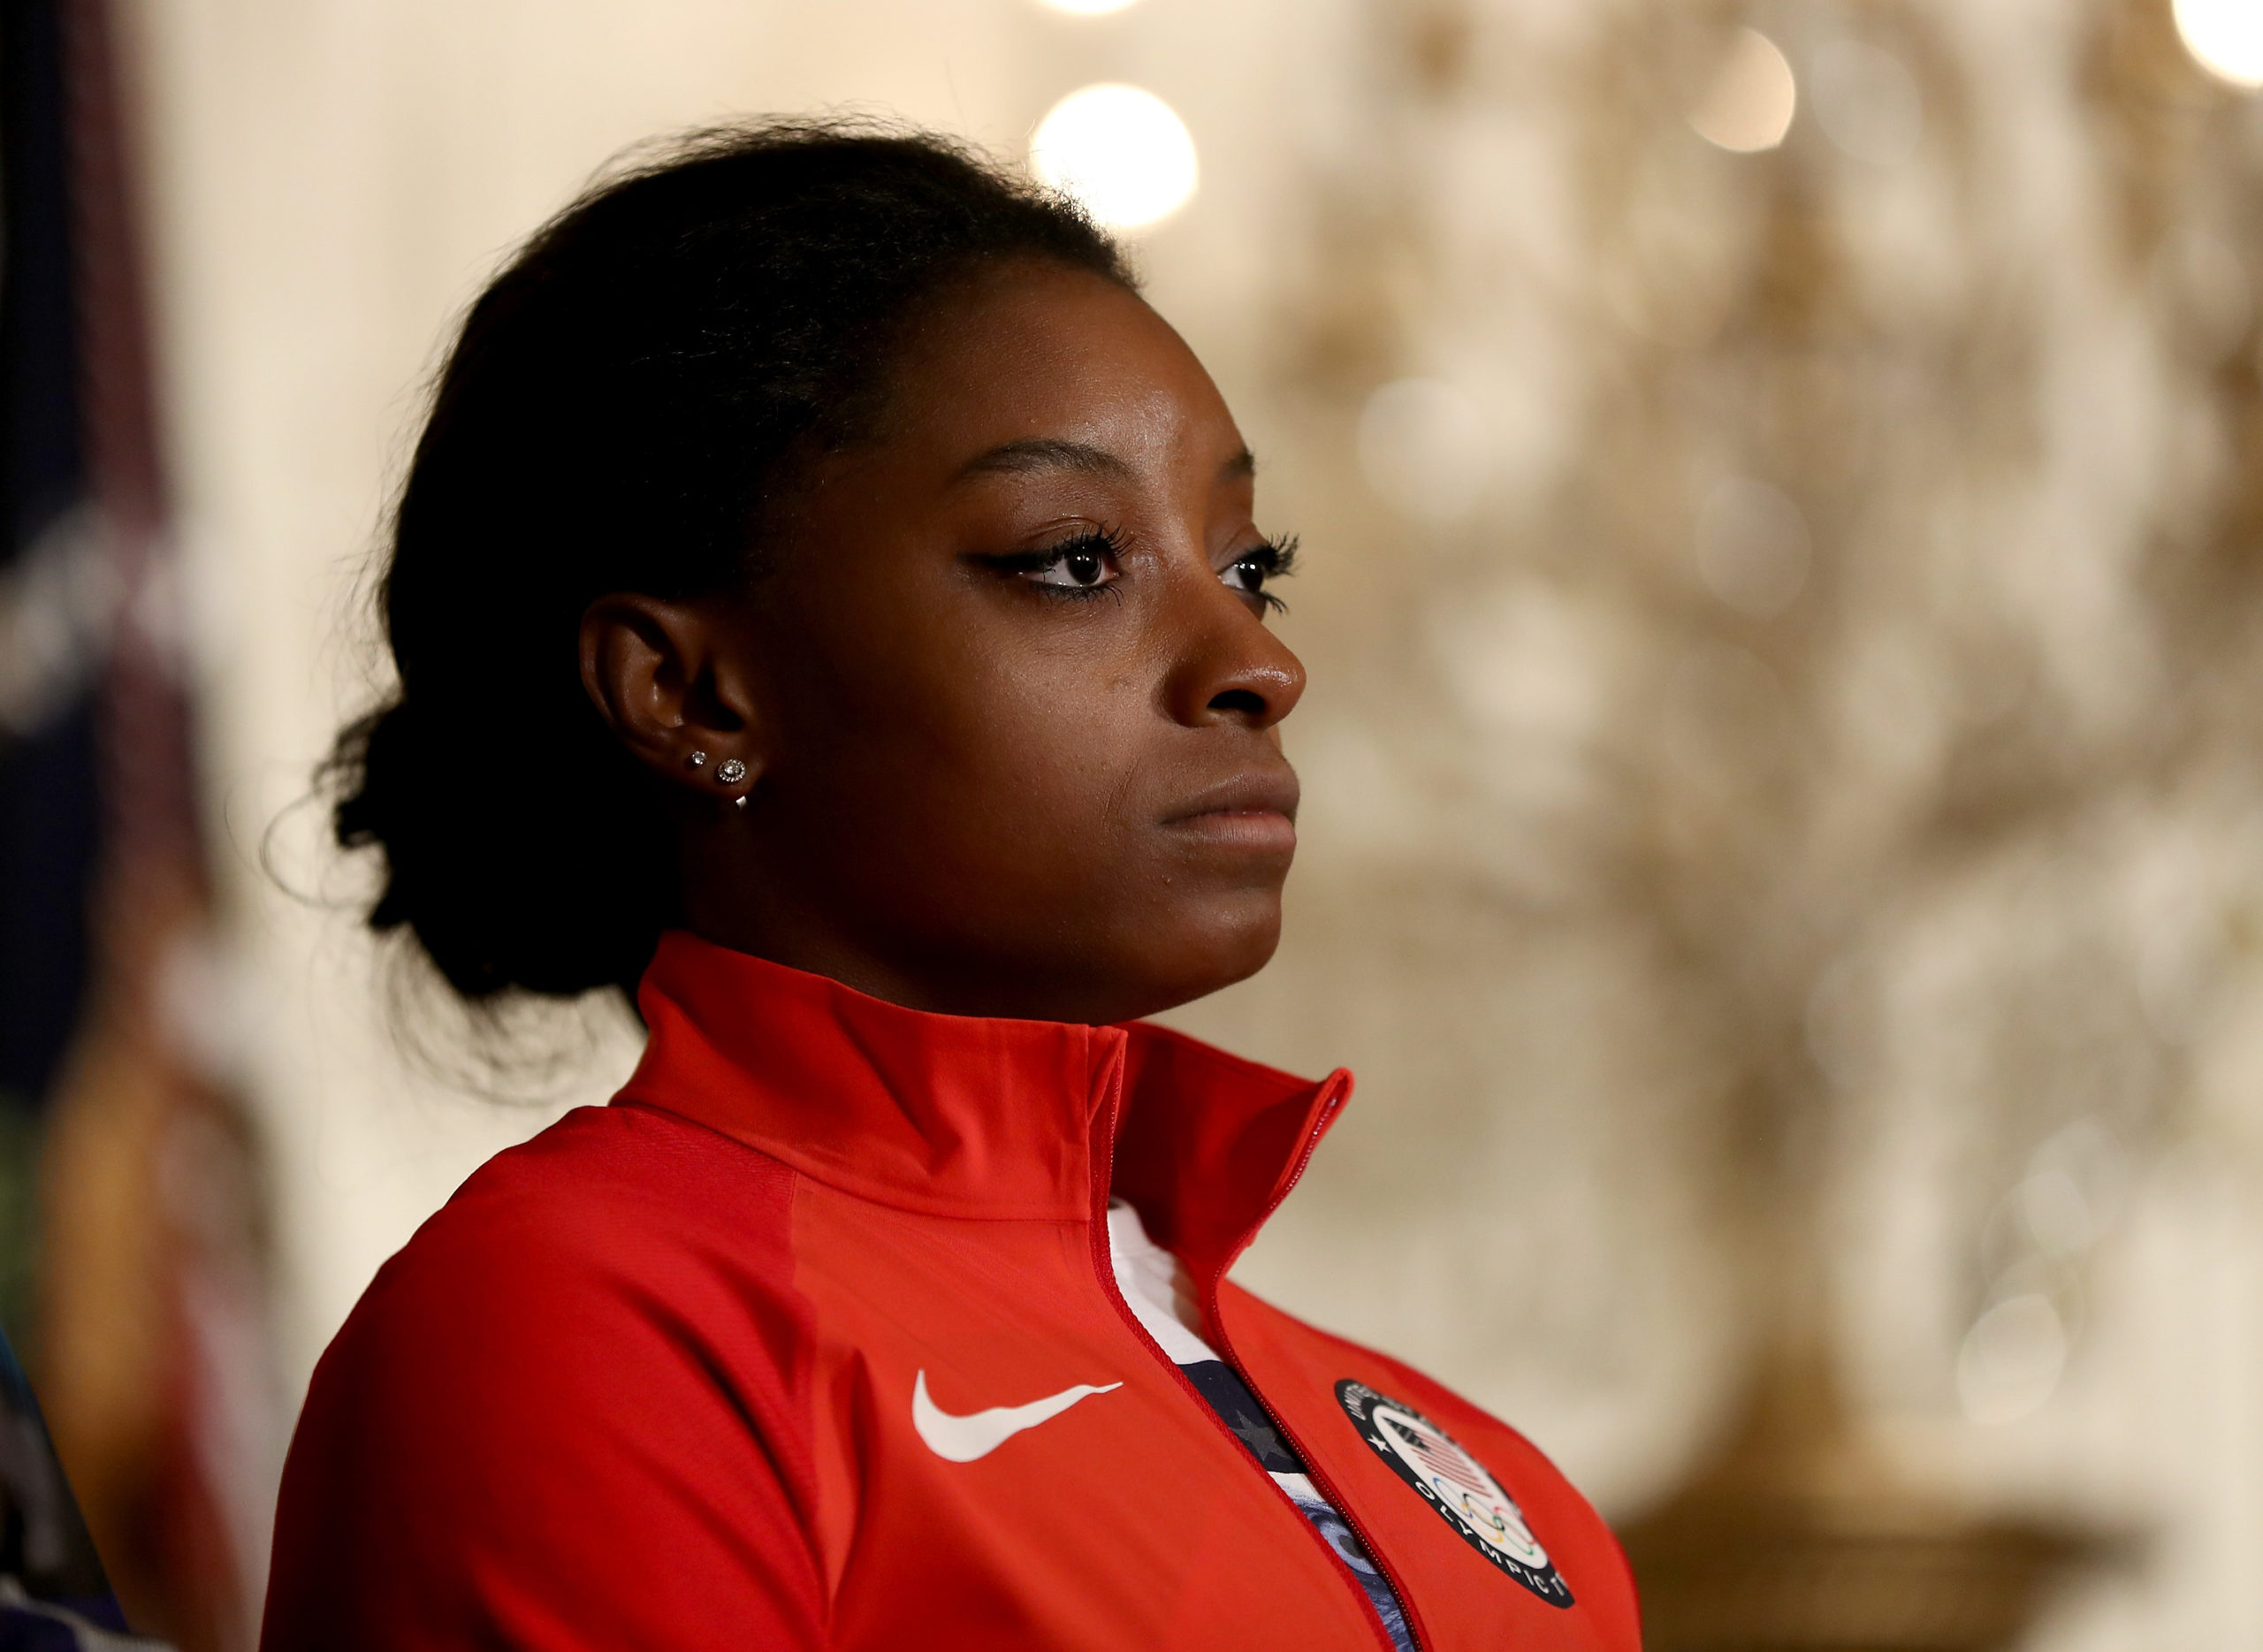 WASHINGTON, DC - SEPTEMBER 29: Olympic medalist Simone Biles stands on stage during an East Room event at the White House September 29, 2016 in Washington, DC. President Obama and first lady Michelle Obama welcome the 2016 U.S. Olympic and Paralympic teams to the White House to honor their participation and success in the Rio Olympic Games this year. (Photo by Elsa/Getty Images)